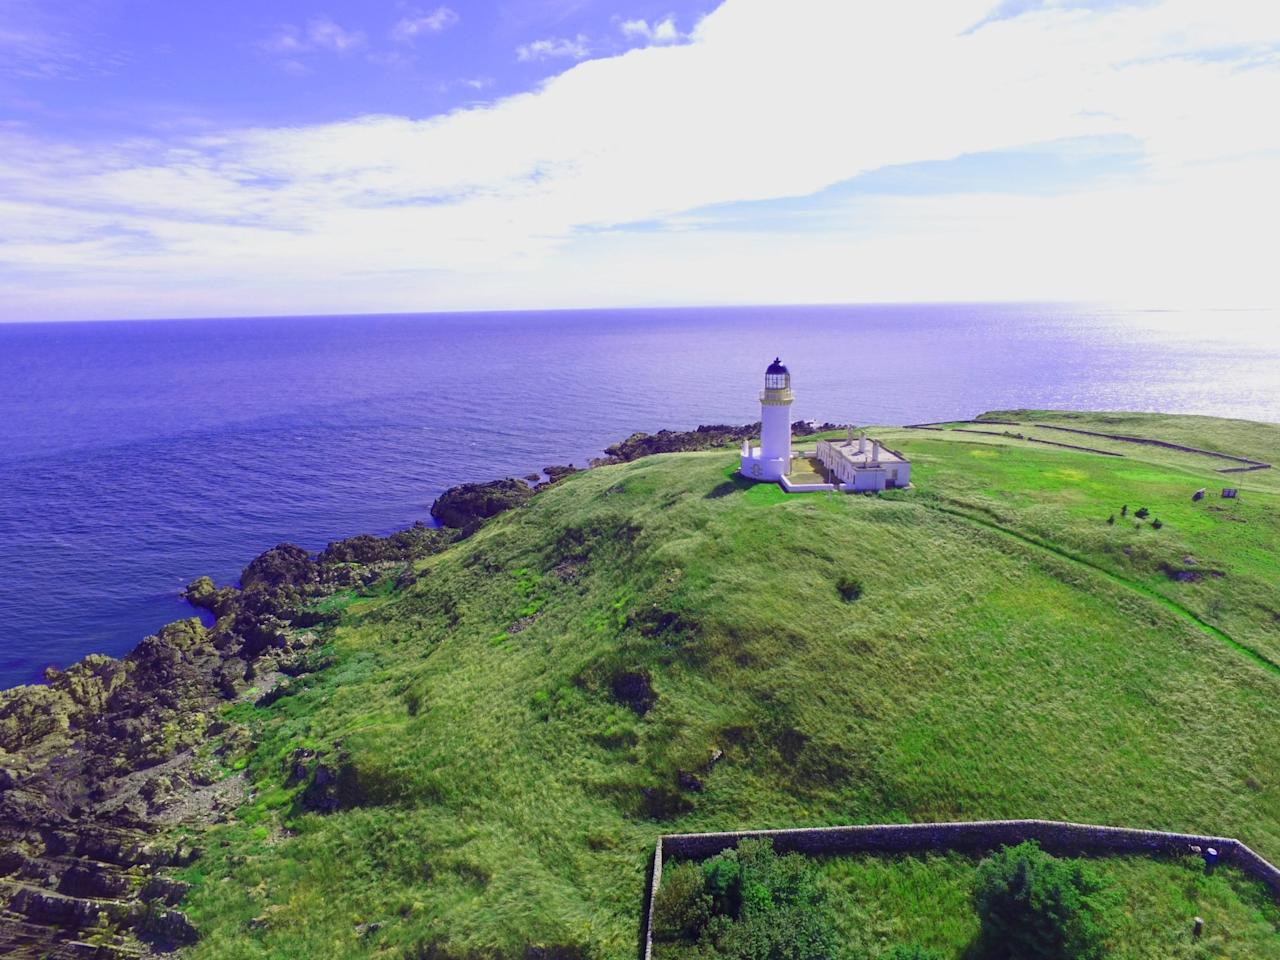 <p>The 29-acre island is home to a 19th-century, fully automated lighthouse tower. </p>